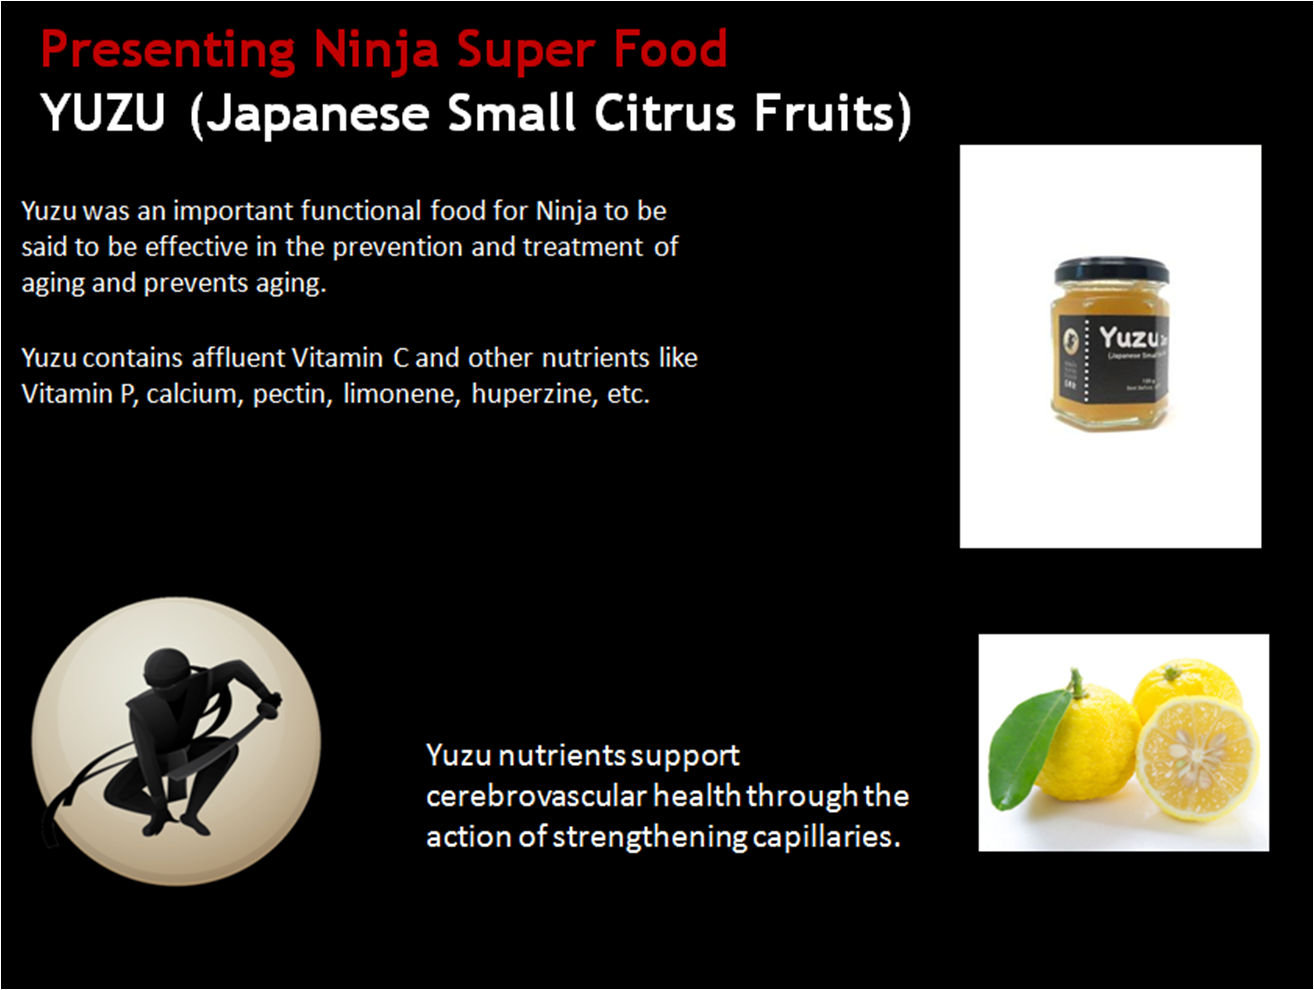 Yuzu was an important functional food for Ninja to be  said to be effective in the prevention and treatment of aging and prevents aging. Yuzu contains affluent Vitamin C and other nutrients like Vitamin P, calcium, pectin, limonene, huperzine, etc.